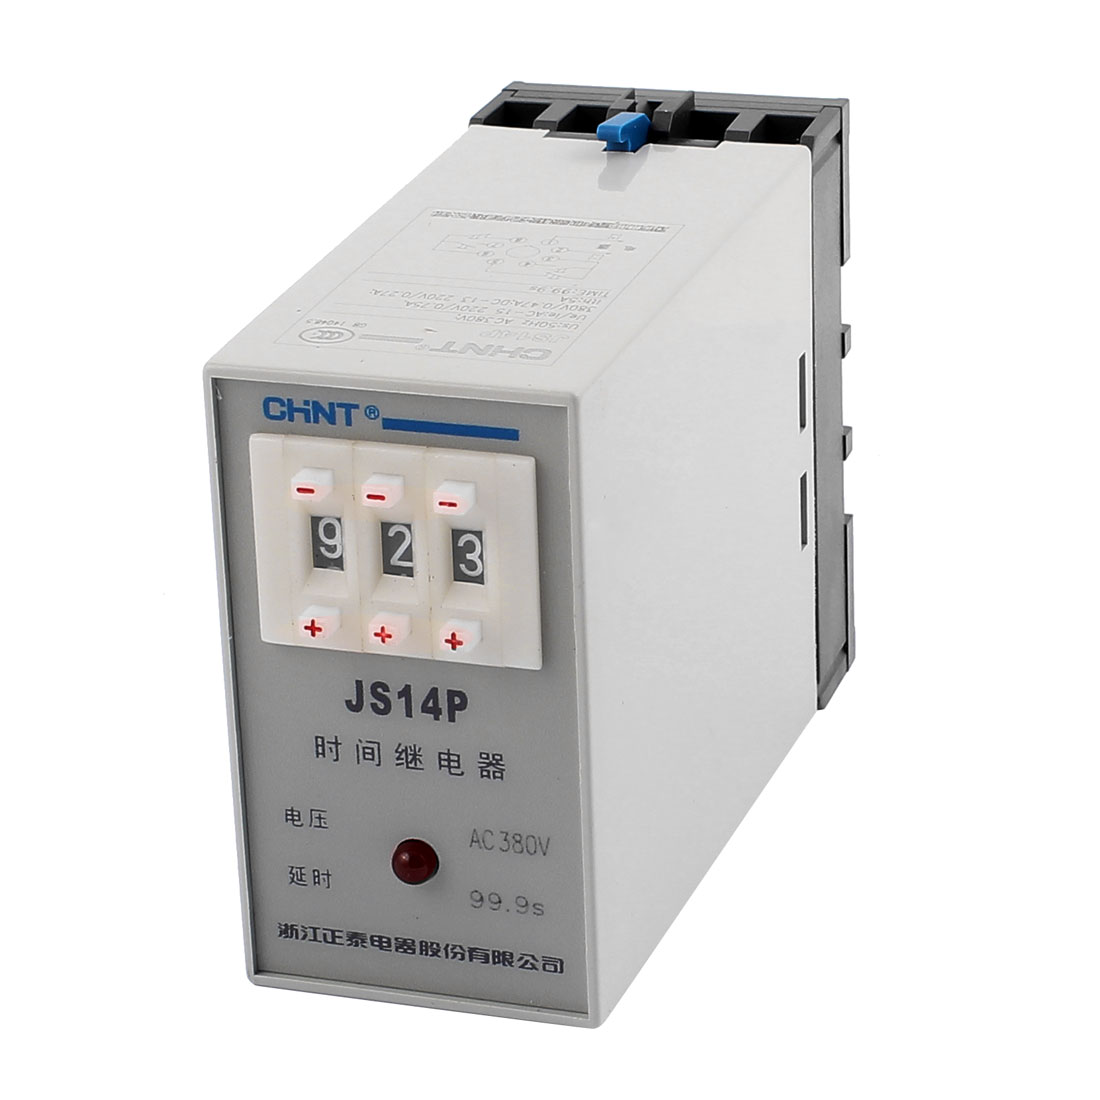 JS14P AC 380V 0.1-99.9 Seconds Two Adjustment Power On Delay Timer Digital Display Time Relay